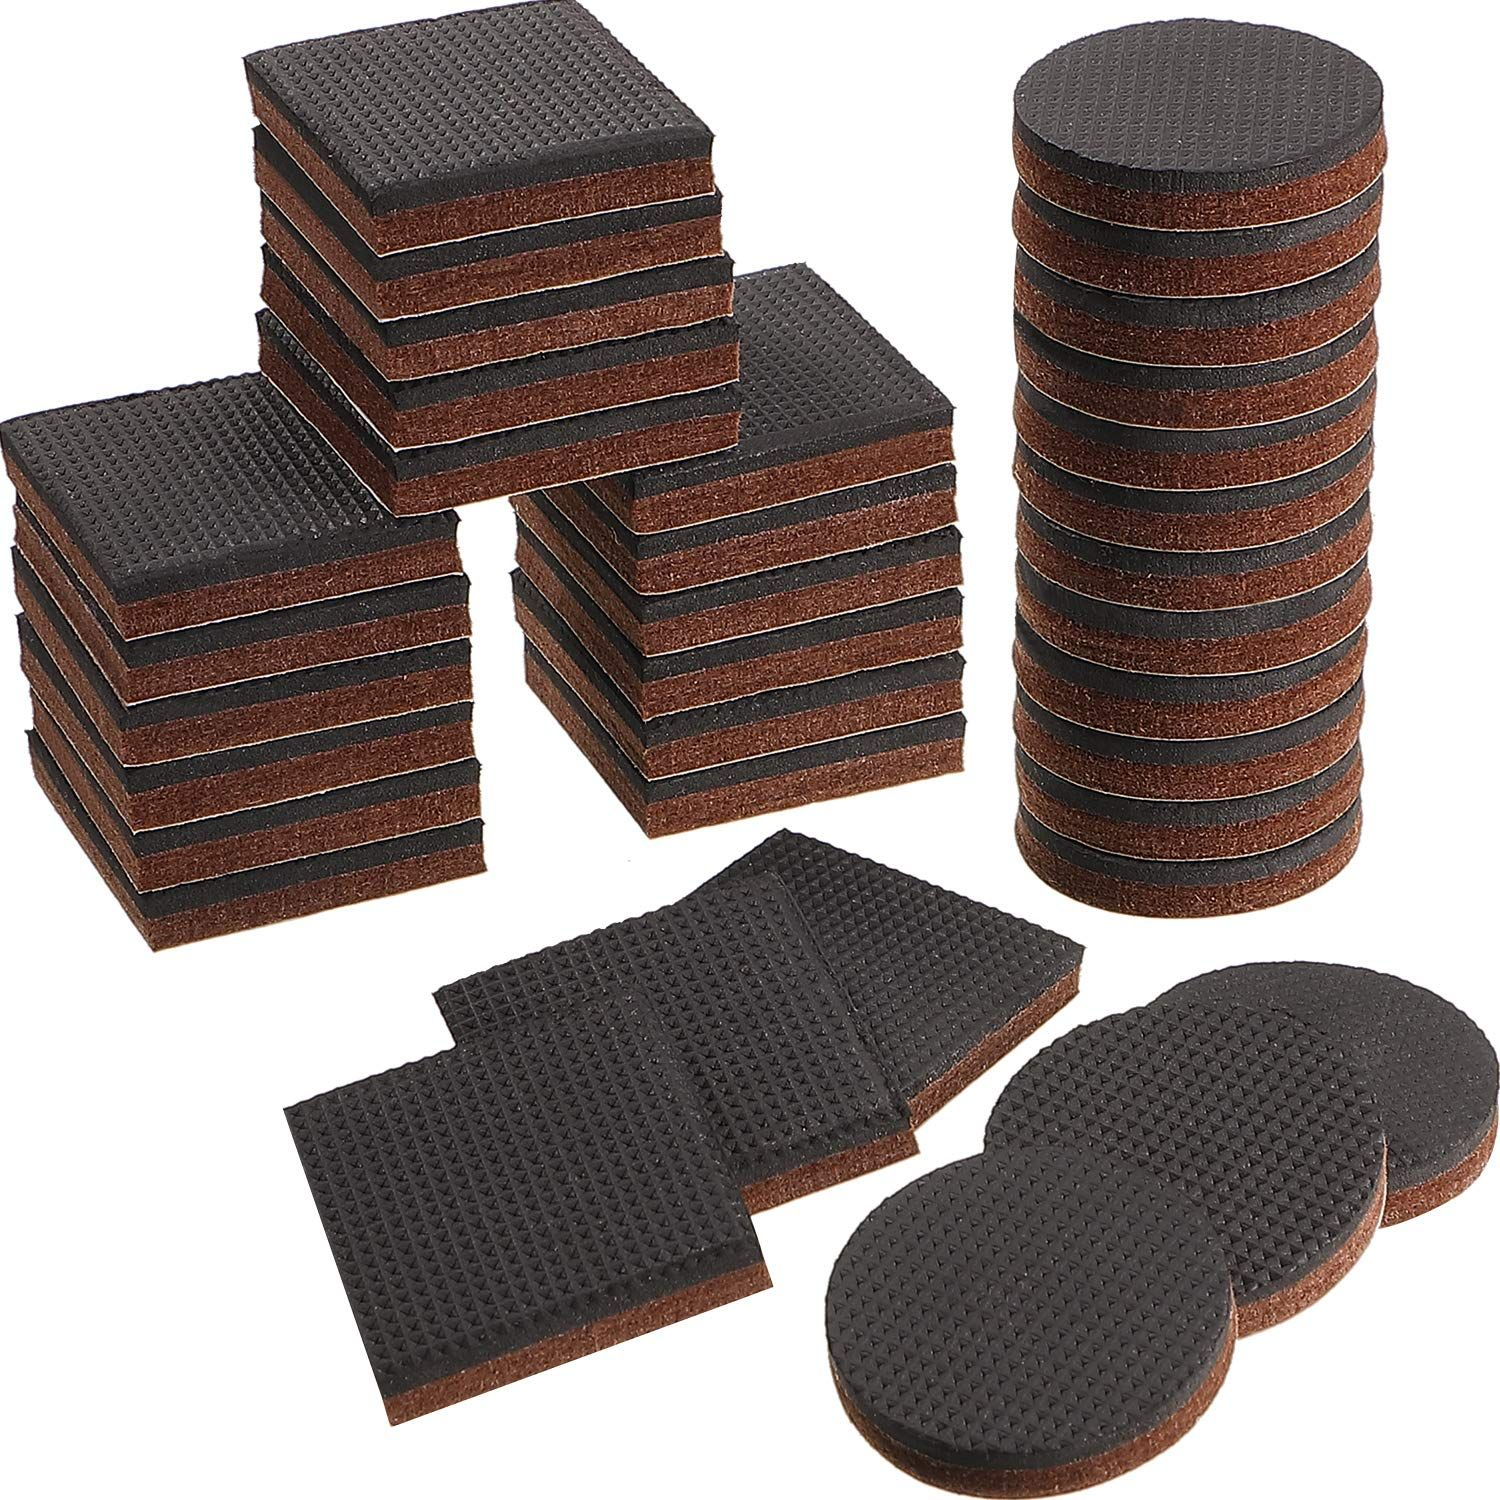 36 Pieces Non Slip Furniture Pads 2 Inch Rubber Feet Pads Furniture Floor Protectors For Keep In Place Furn In 2020 Furniture Pads Furniture Floor Protectors Foot Pads